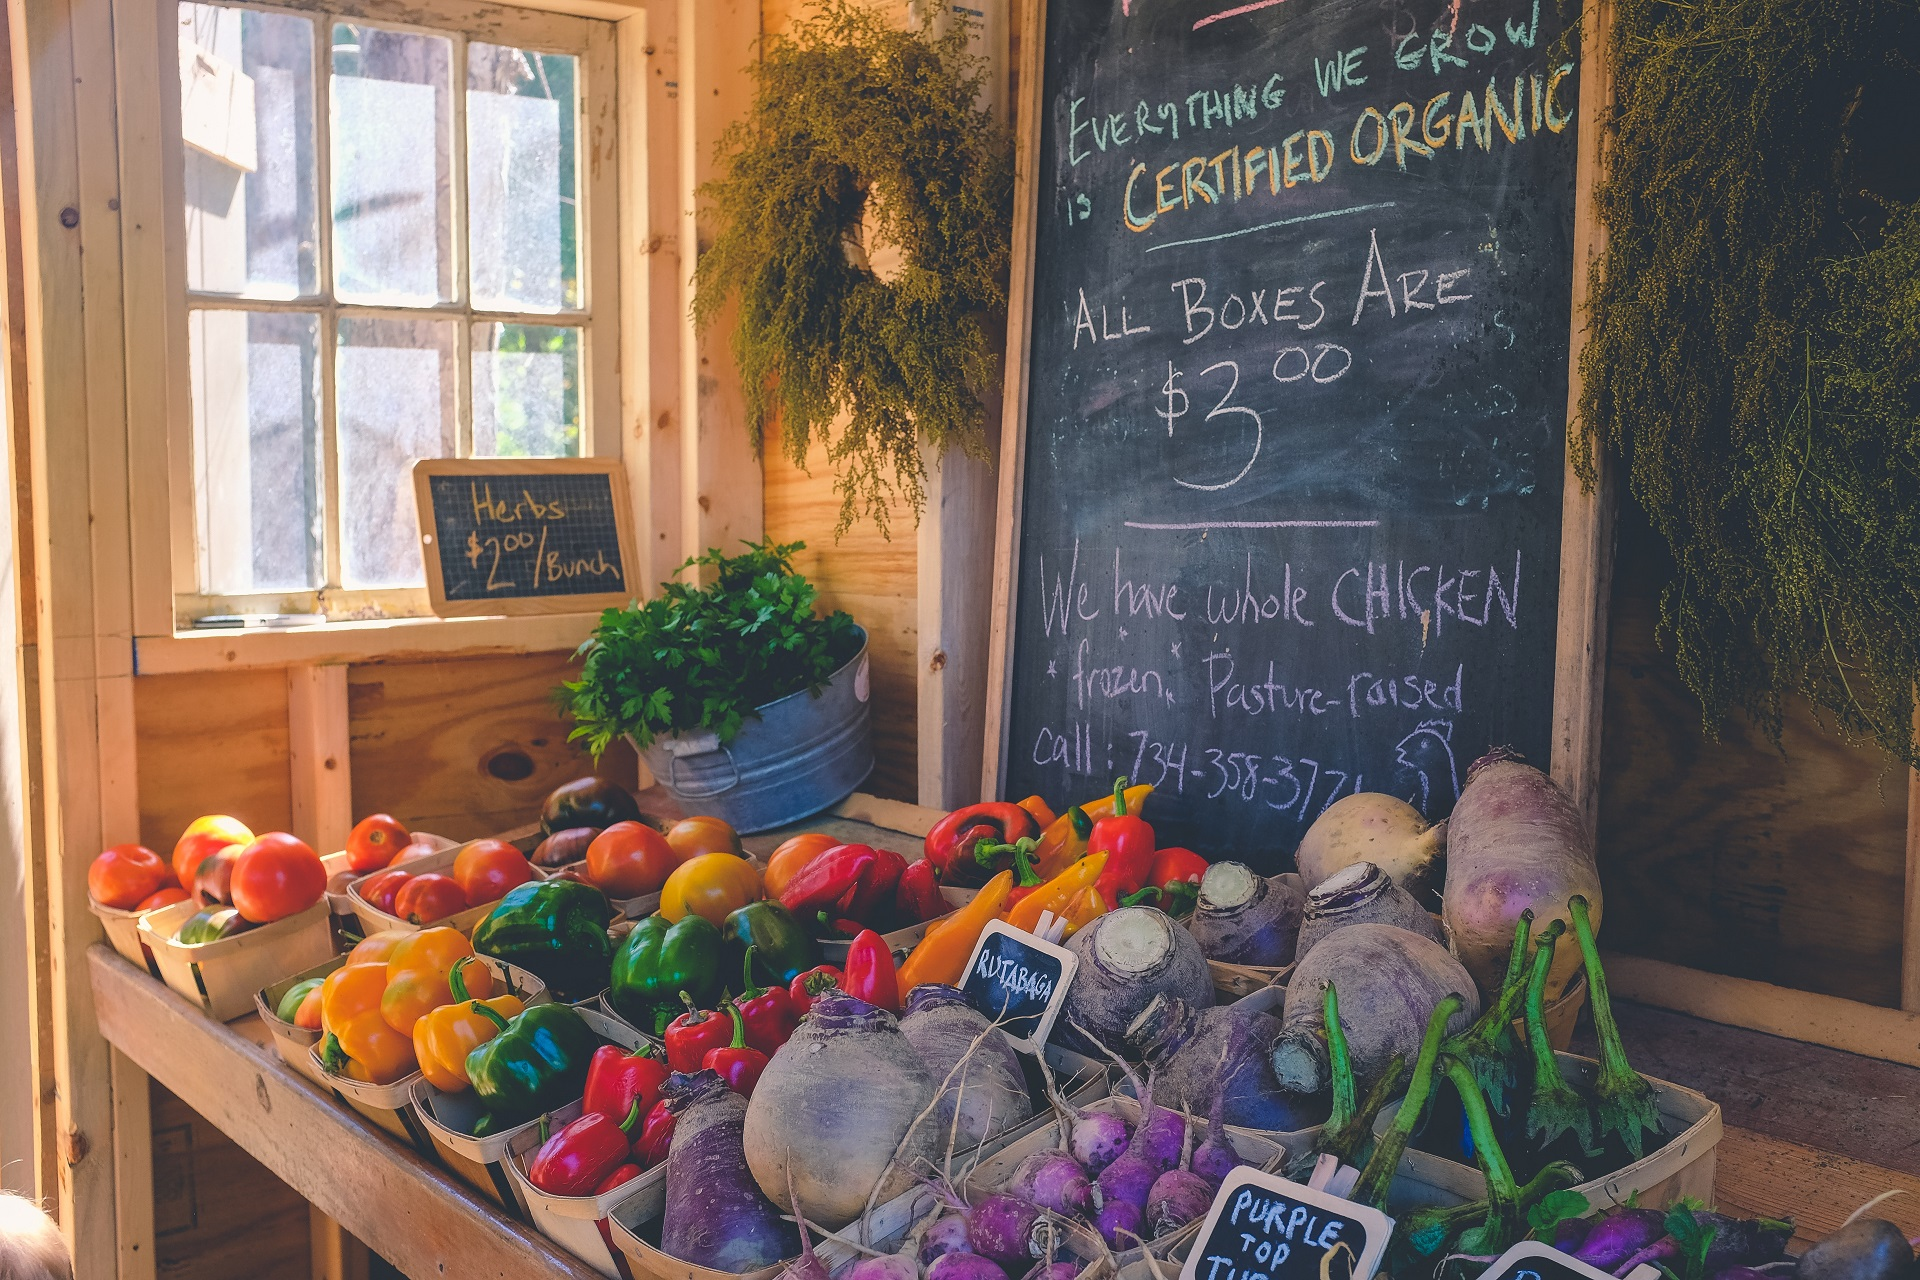 Organic stores are a good green business idea.